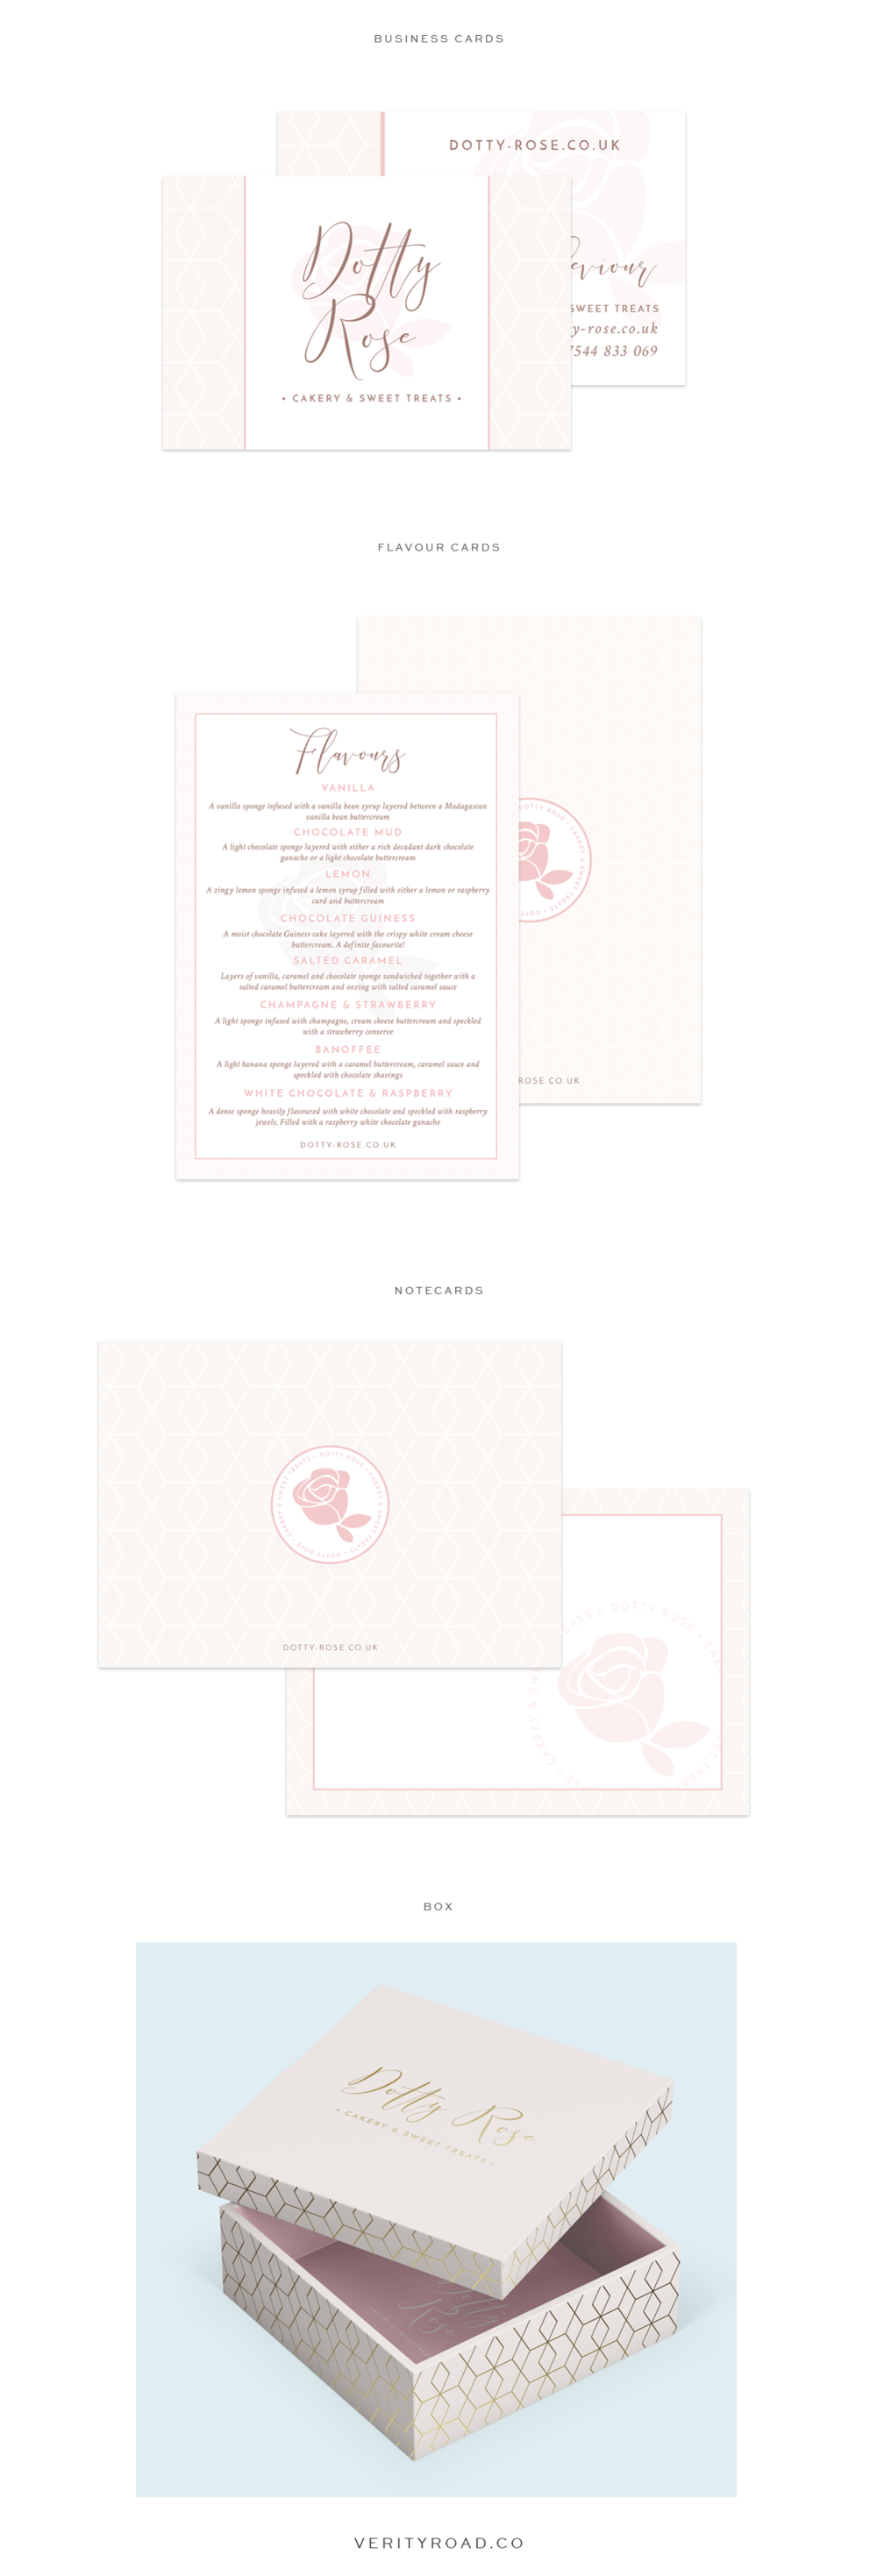 branding, branded print materials, business cards, packaging, flavour card, for dotty rose cakery and sweet treats, wedding professional, wedding business, wedding cake designer, luxury brand styling and web design for female entrepreneurs. pastel color palette, blue, pink, floral inspiration, watercolor, geometric pattern, business owner, blogger. See more for brand board, brand style guide, social media branding and web design.